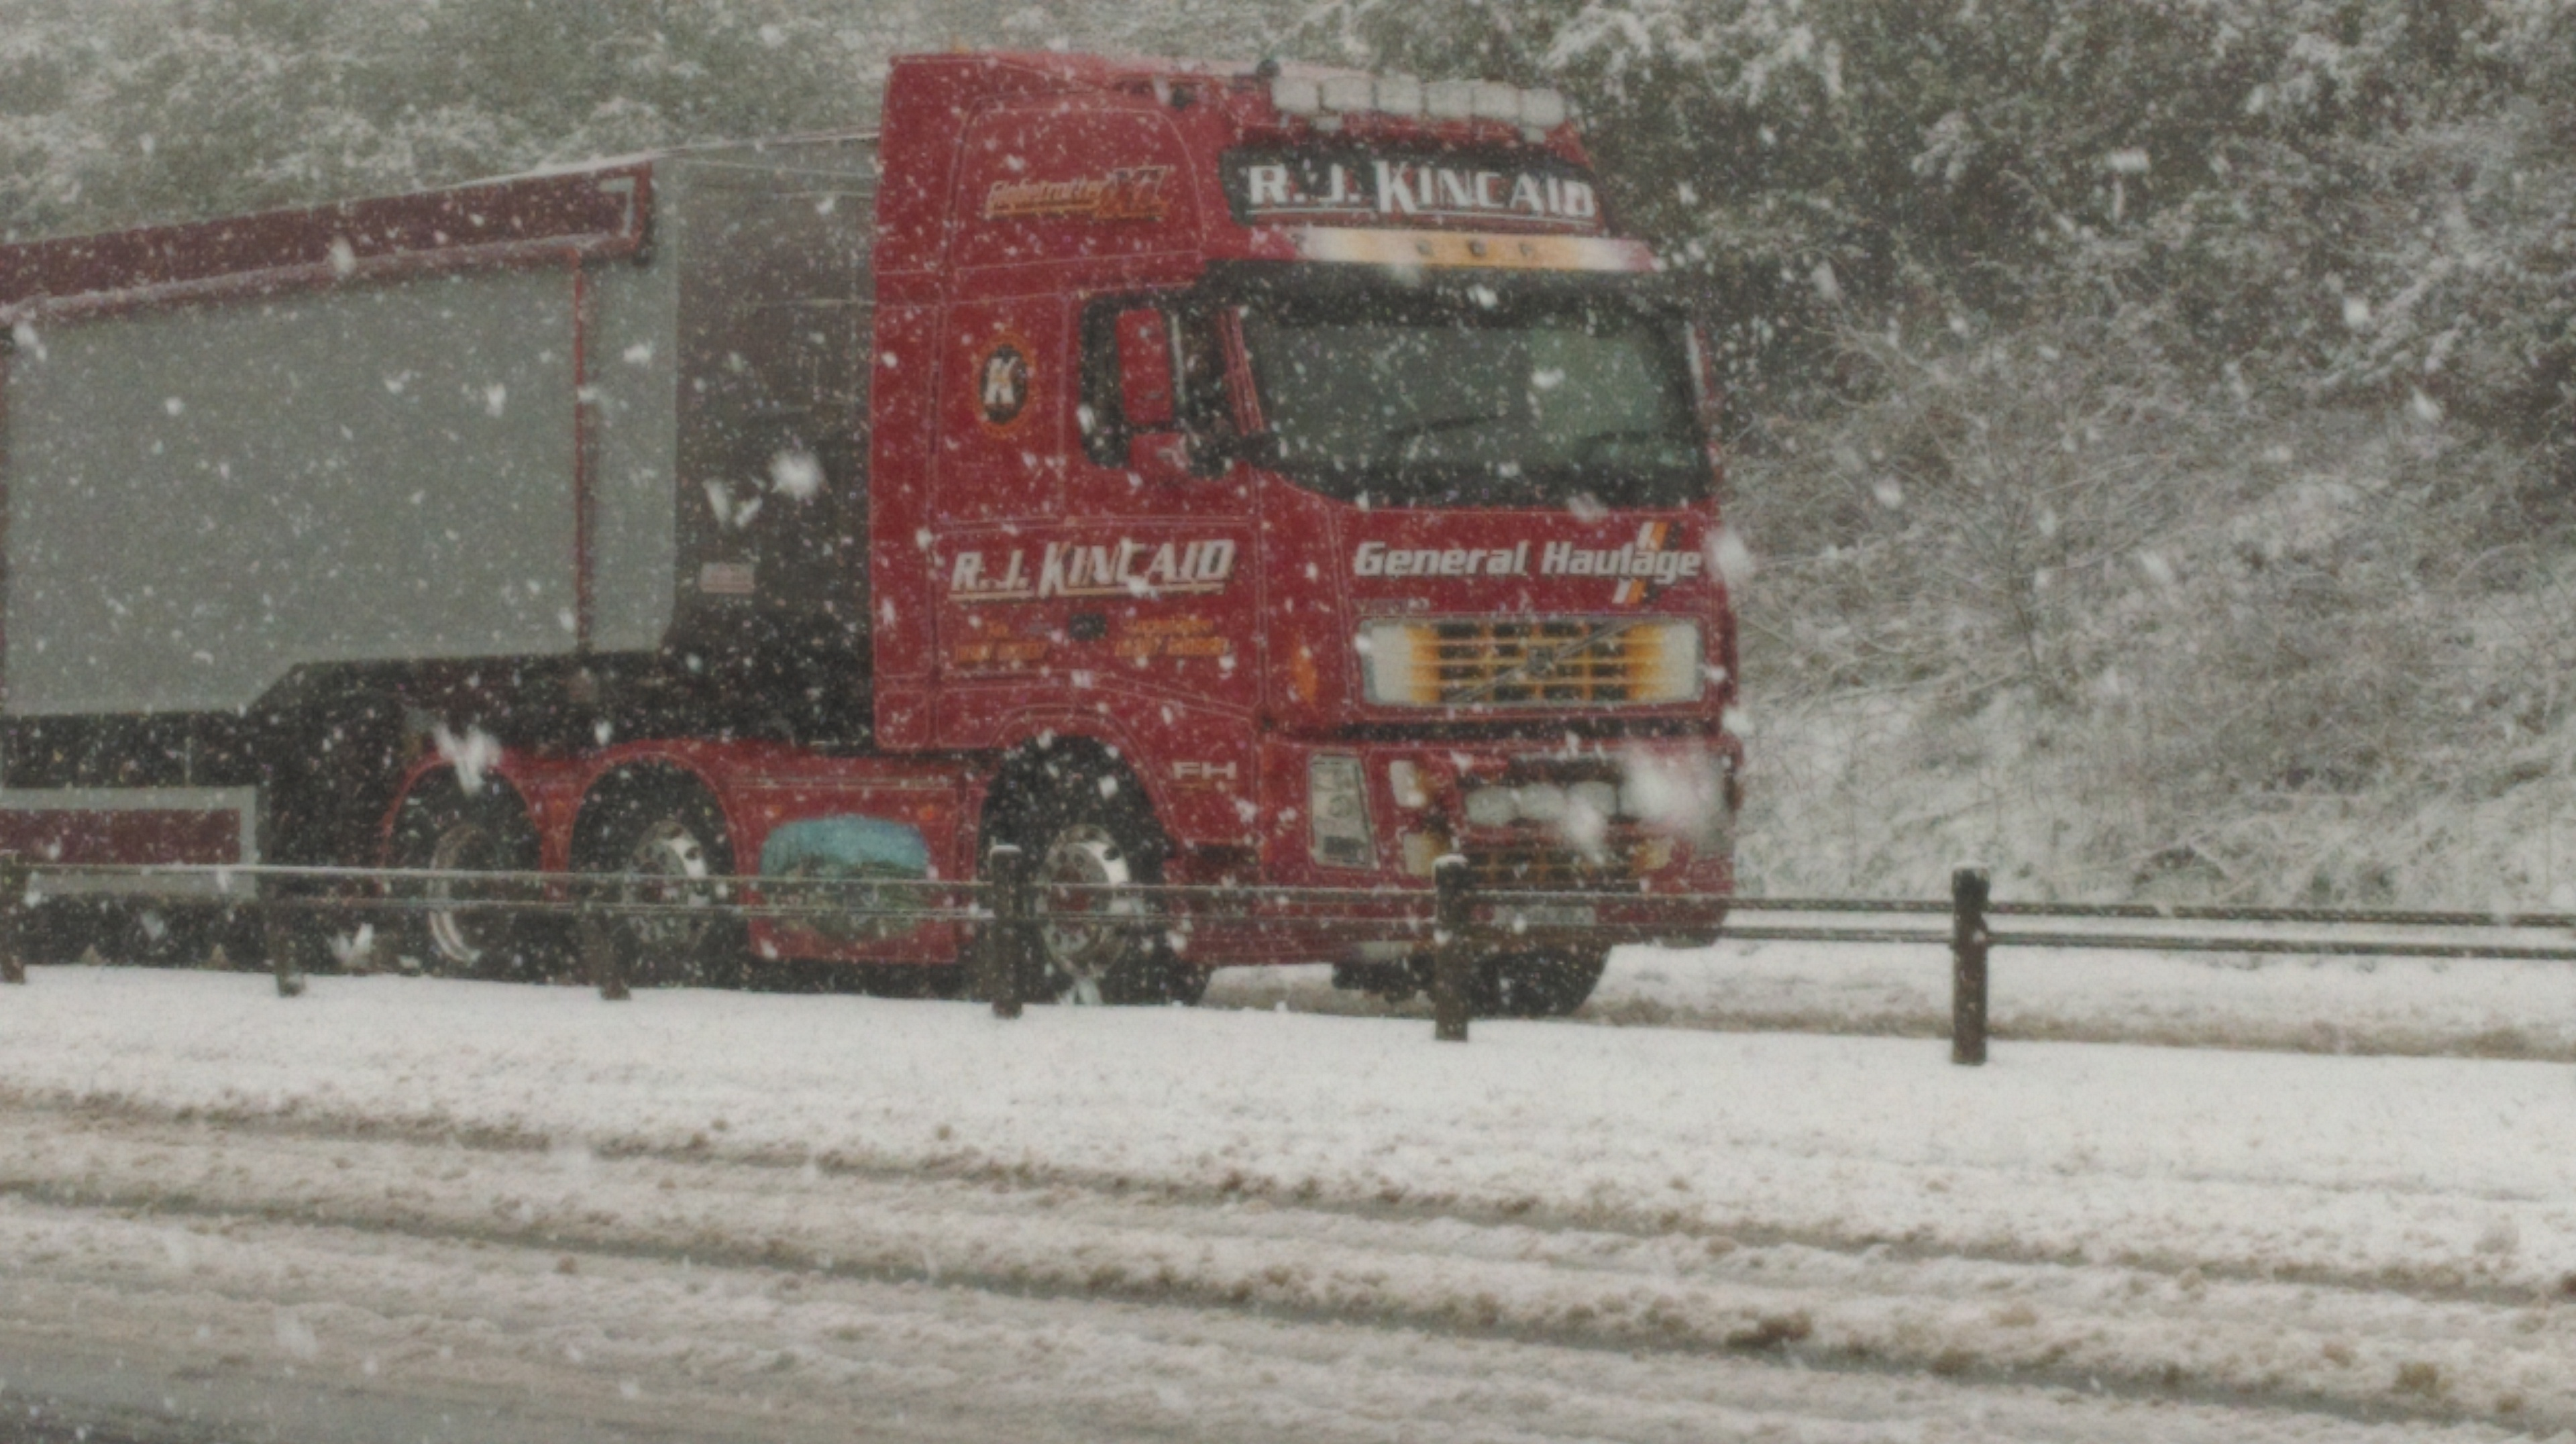 A lorry battles through the snow on the A9 near Inverness